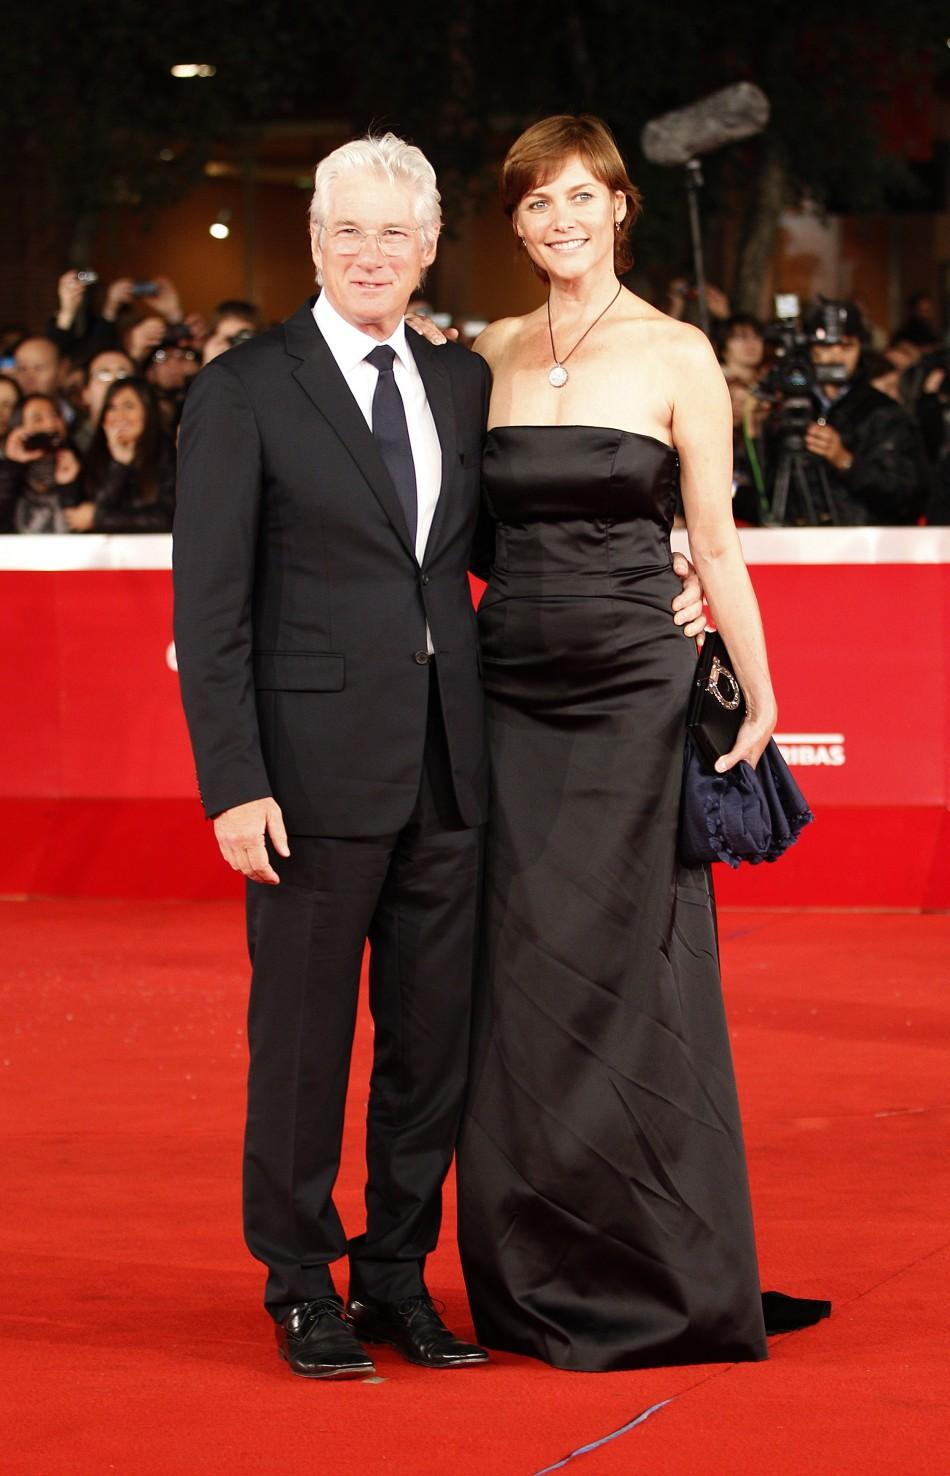 Actor Richard Gere (L) and his wife Carey Lowell pose during a red carpet at the Rome Film Festival